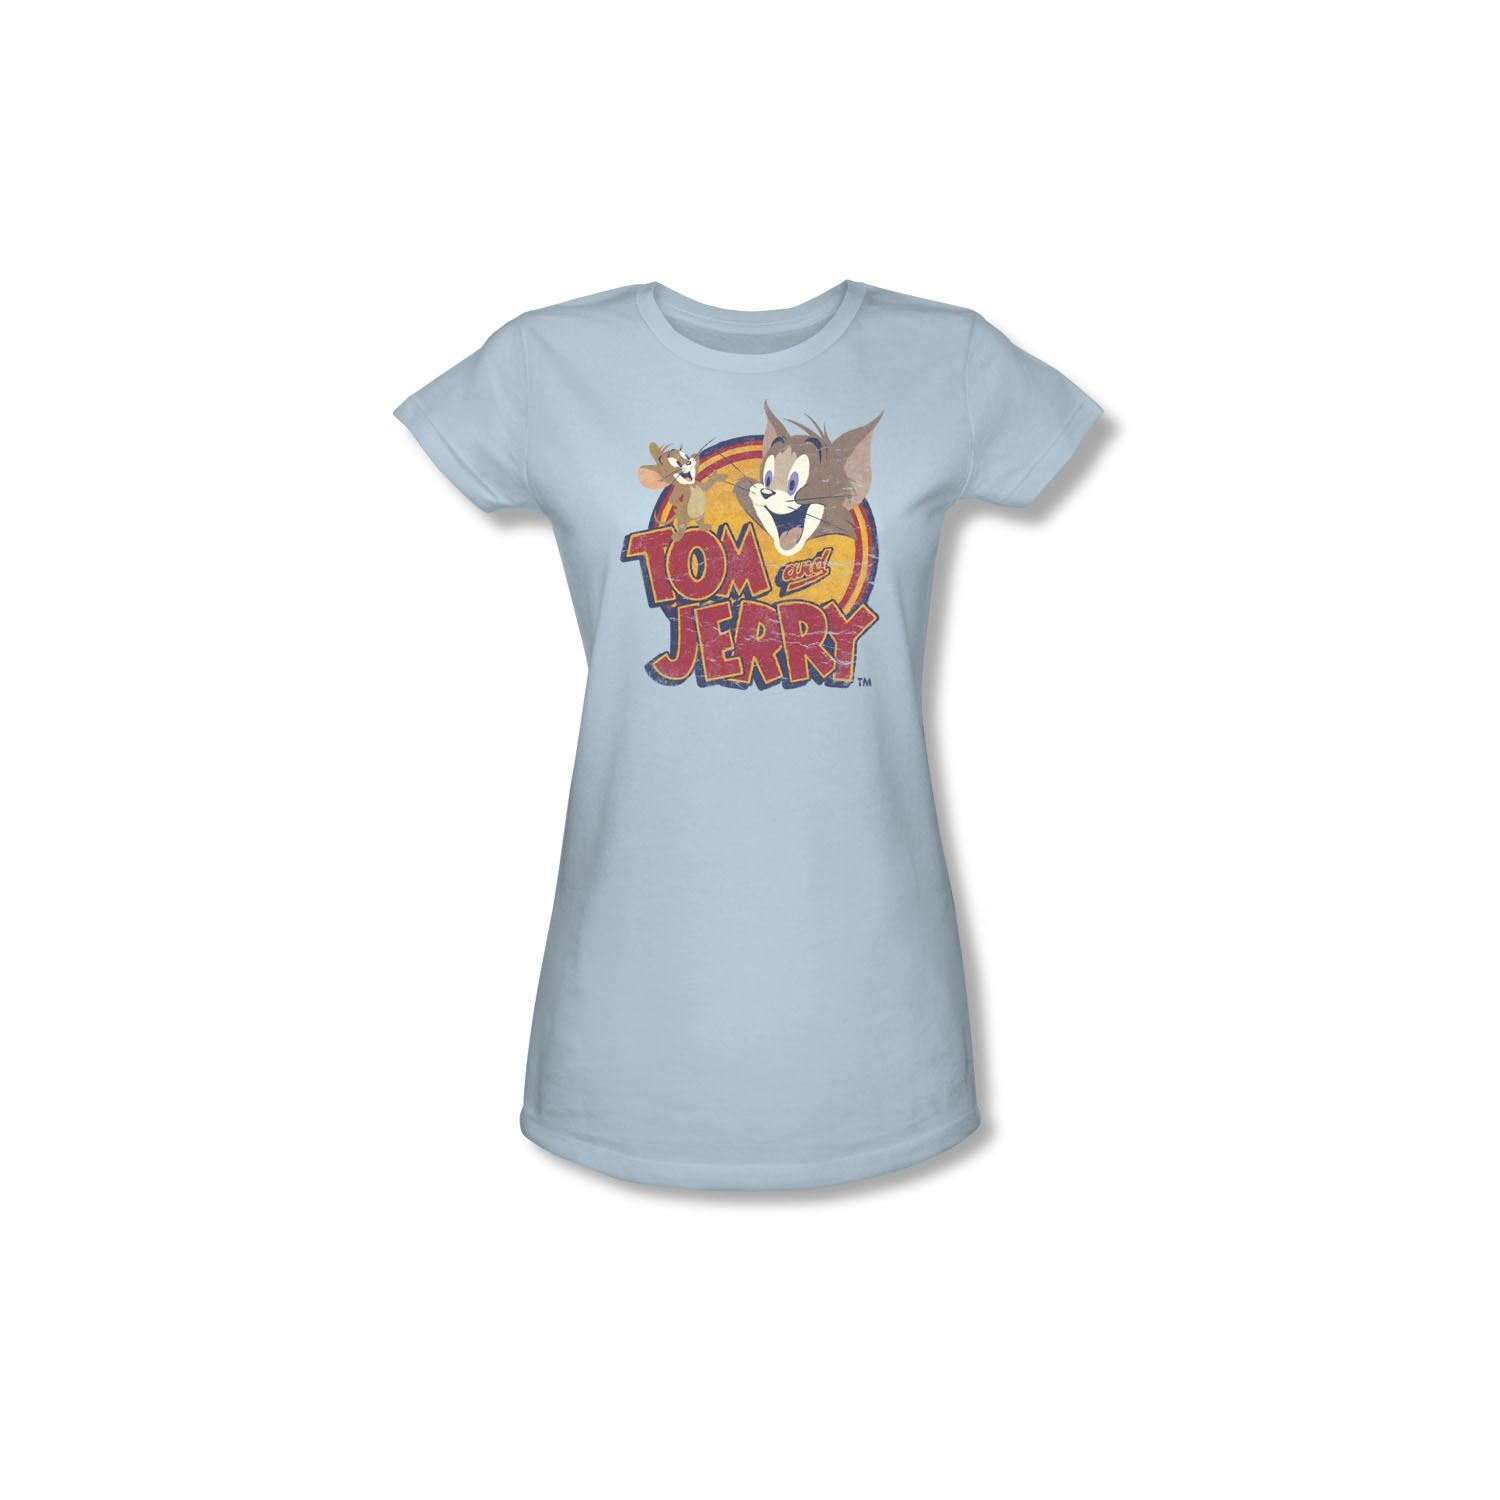 Tom and Jerry Vintage Logo Juniors Shirt - XX-Large